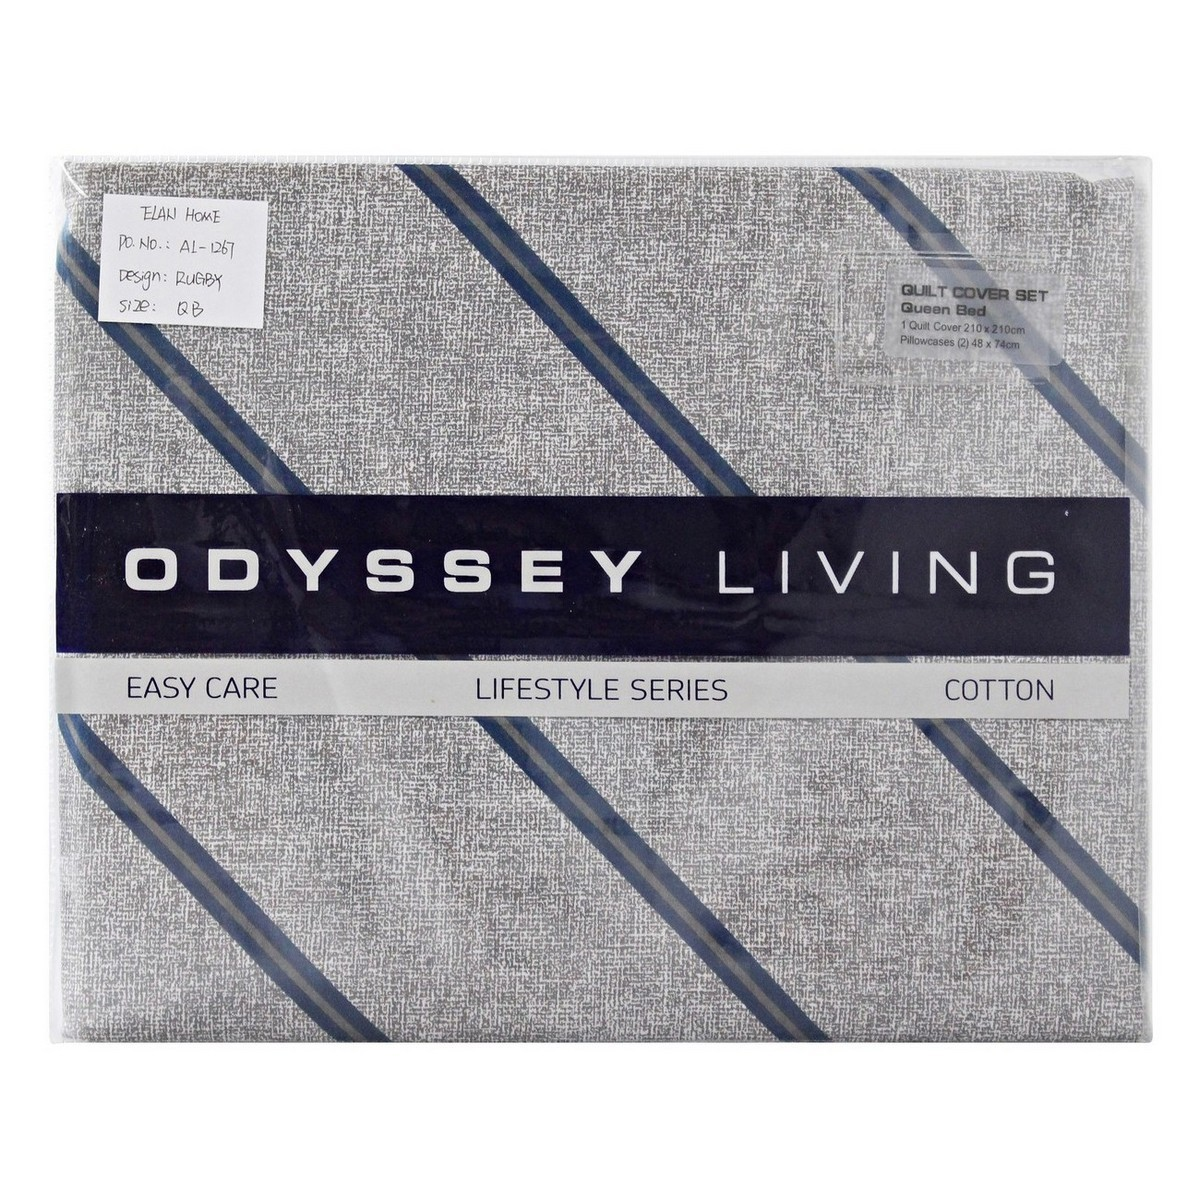 Odyssey Living  Rugby Cotton Quilt Cover Set, Queen